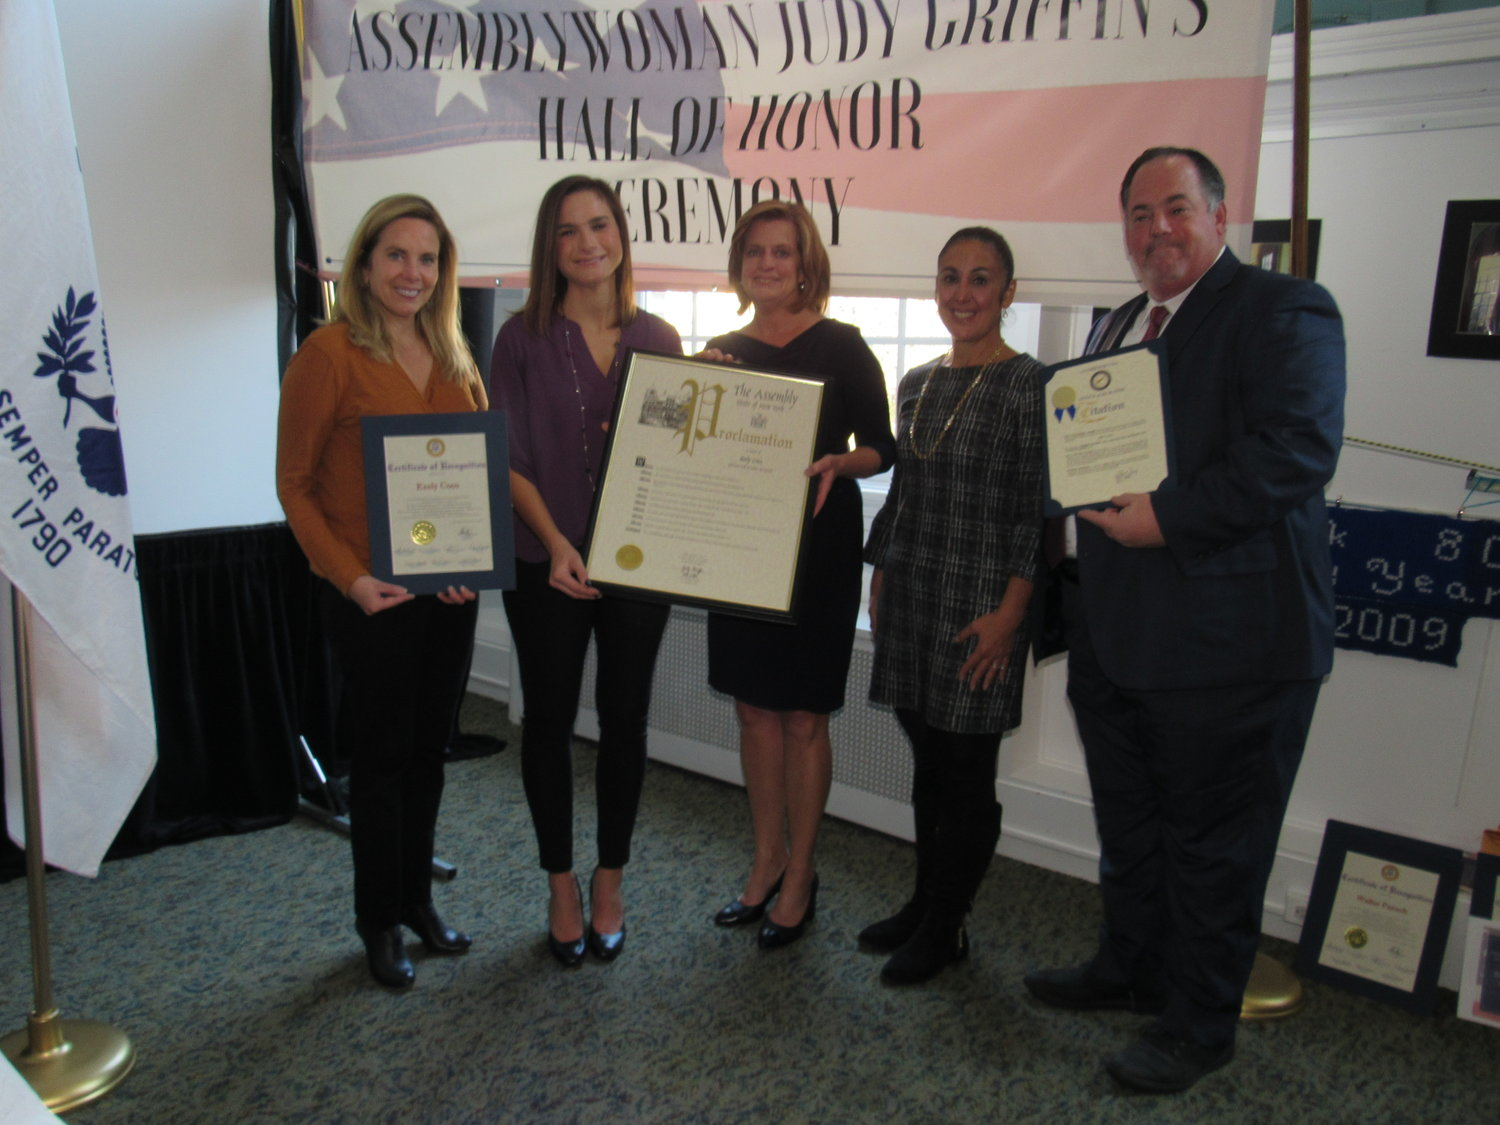 Keely Coco, second from left, of Lynbrook Veterans of Foreign Wars Post 2307, was recognized at the event by its host, Assemblywoman Judy Griffin, center, and, from left, Hempstead Town Supervisor Laura Gillen, Town Clerk Sylvia Cabana and Lynbrook Deputy Mayor Michael Hawxhurst.